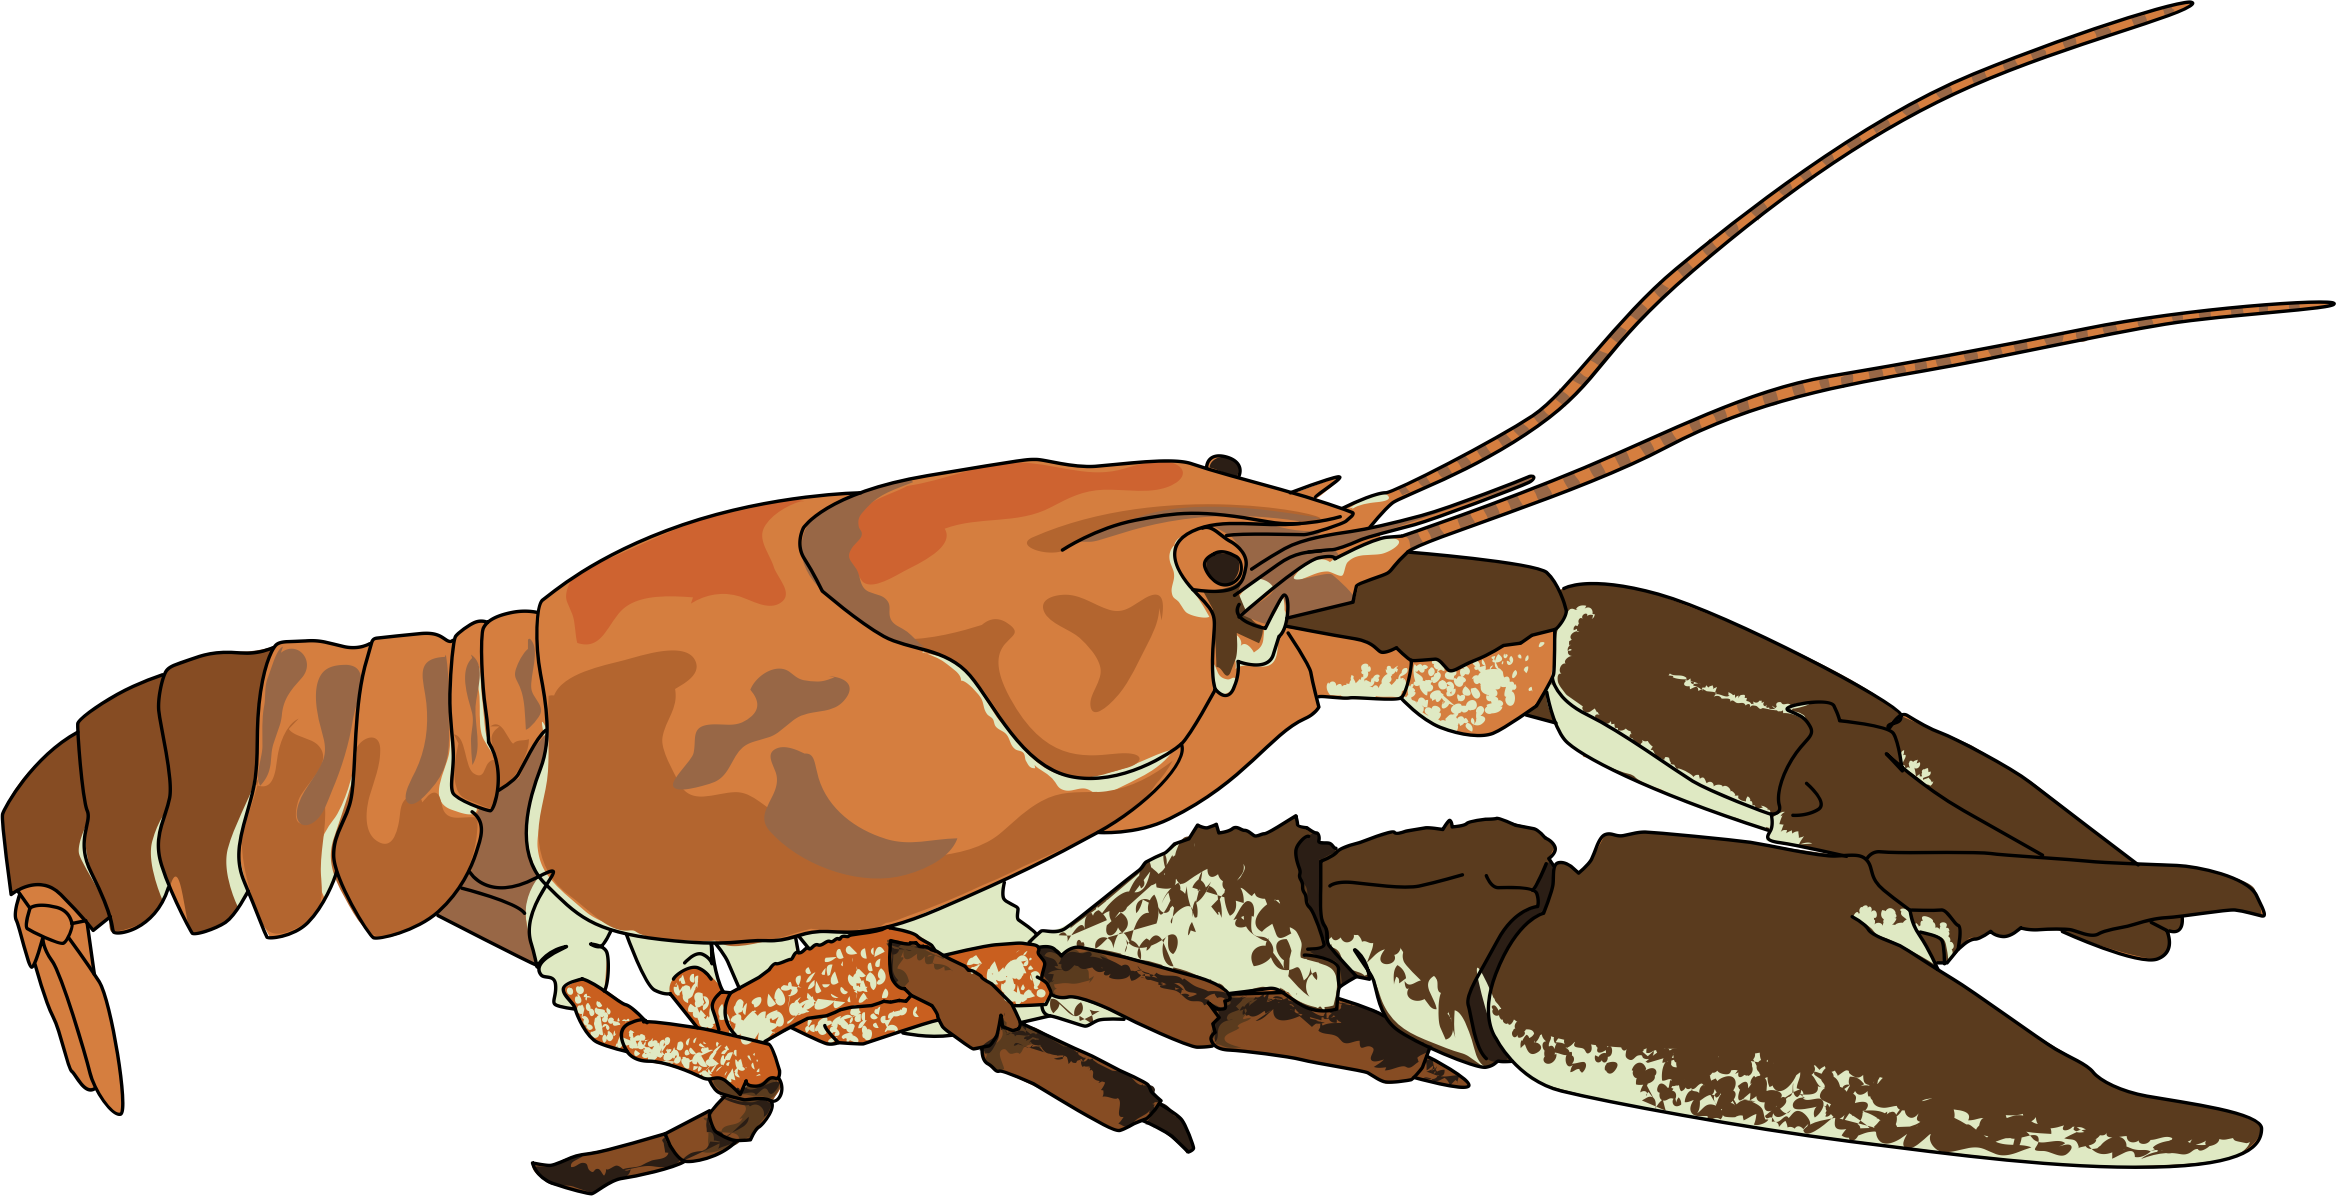 Ecrevisse a pattes blanches. Seafood clipart crayfish